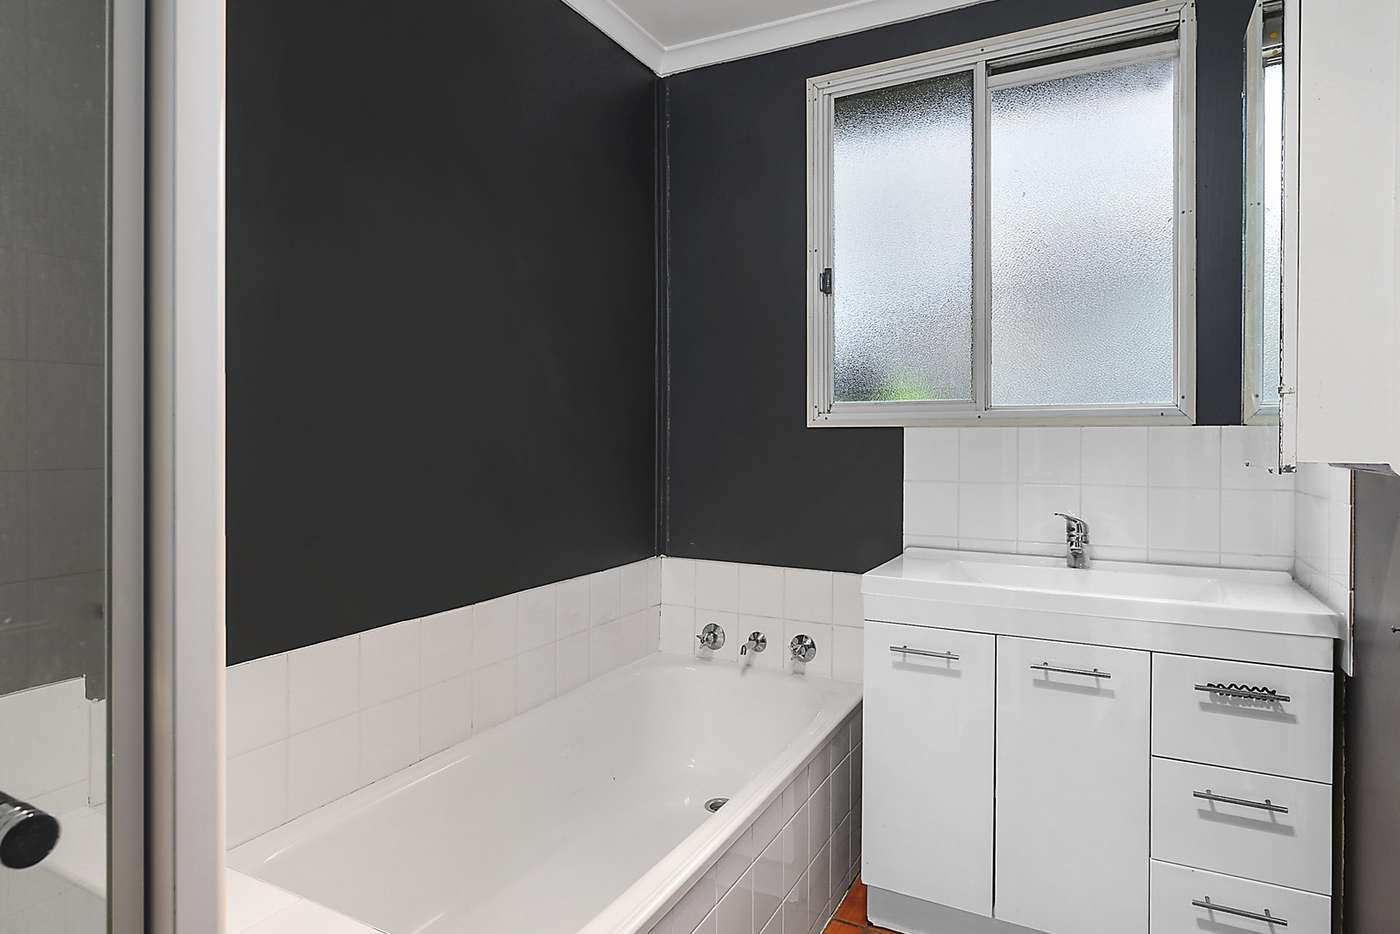 Sixth view of Homely house listing, 169 Solar Drive, Whittington VIC 3219